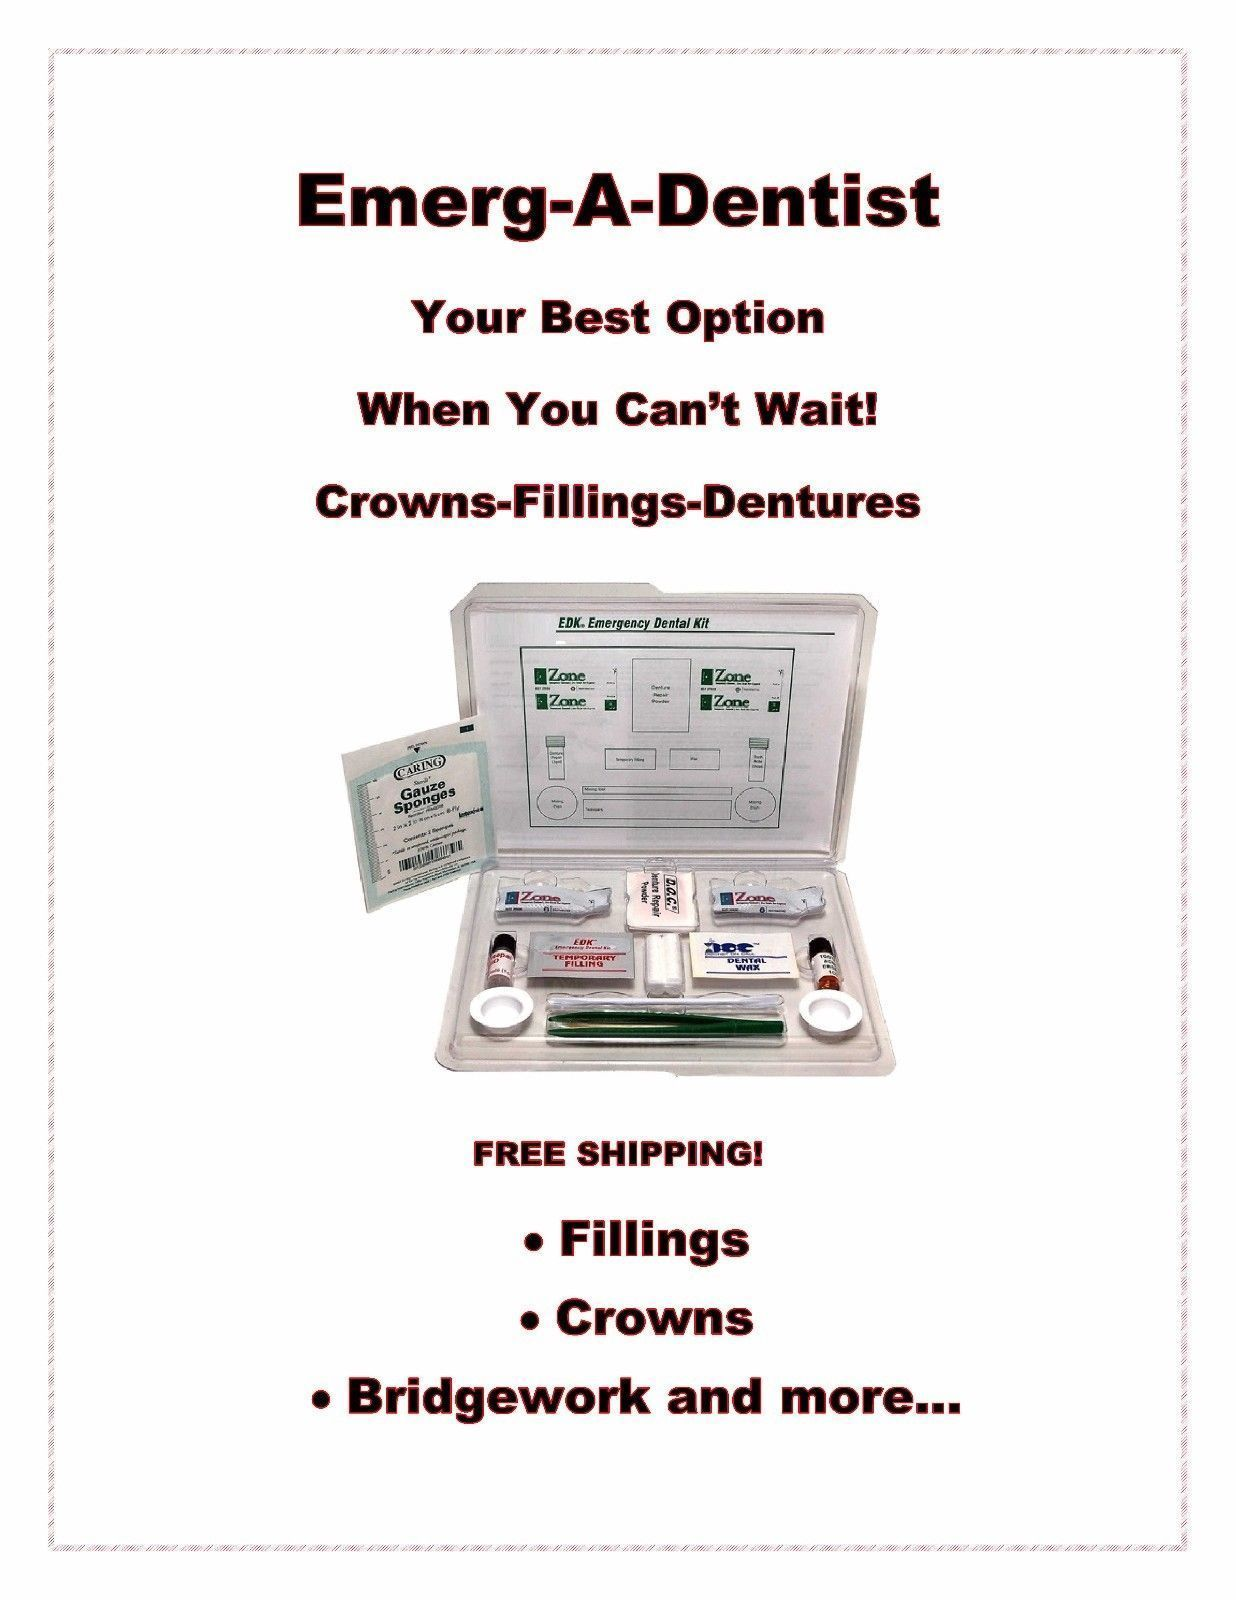 Primary image for Emerg-A-Dent Deluxe First Aid Emergency Kit by EDK Fillings-Dentures-Crowns